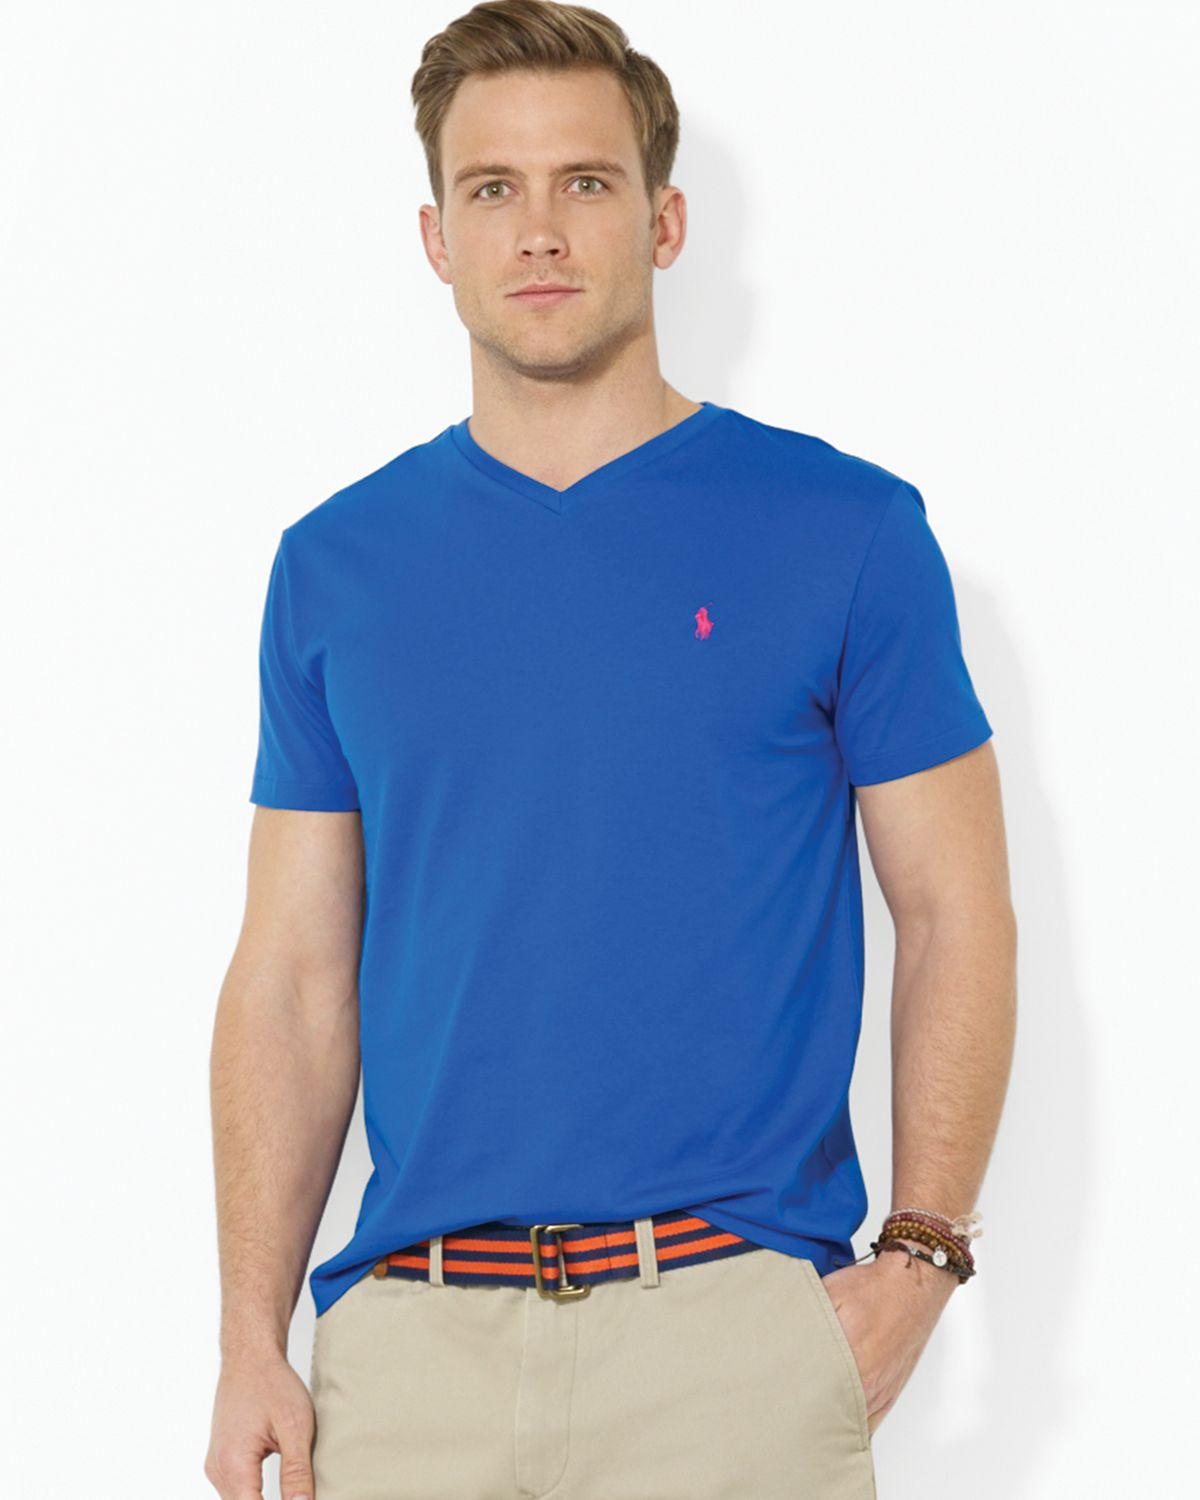 Ralph Lauren Polo Short Sleeve Cotton Jersey V Neck Tee In